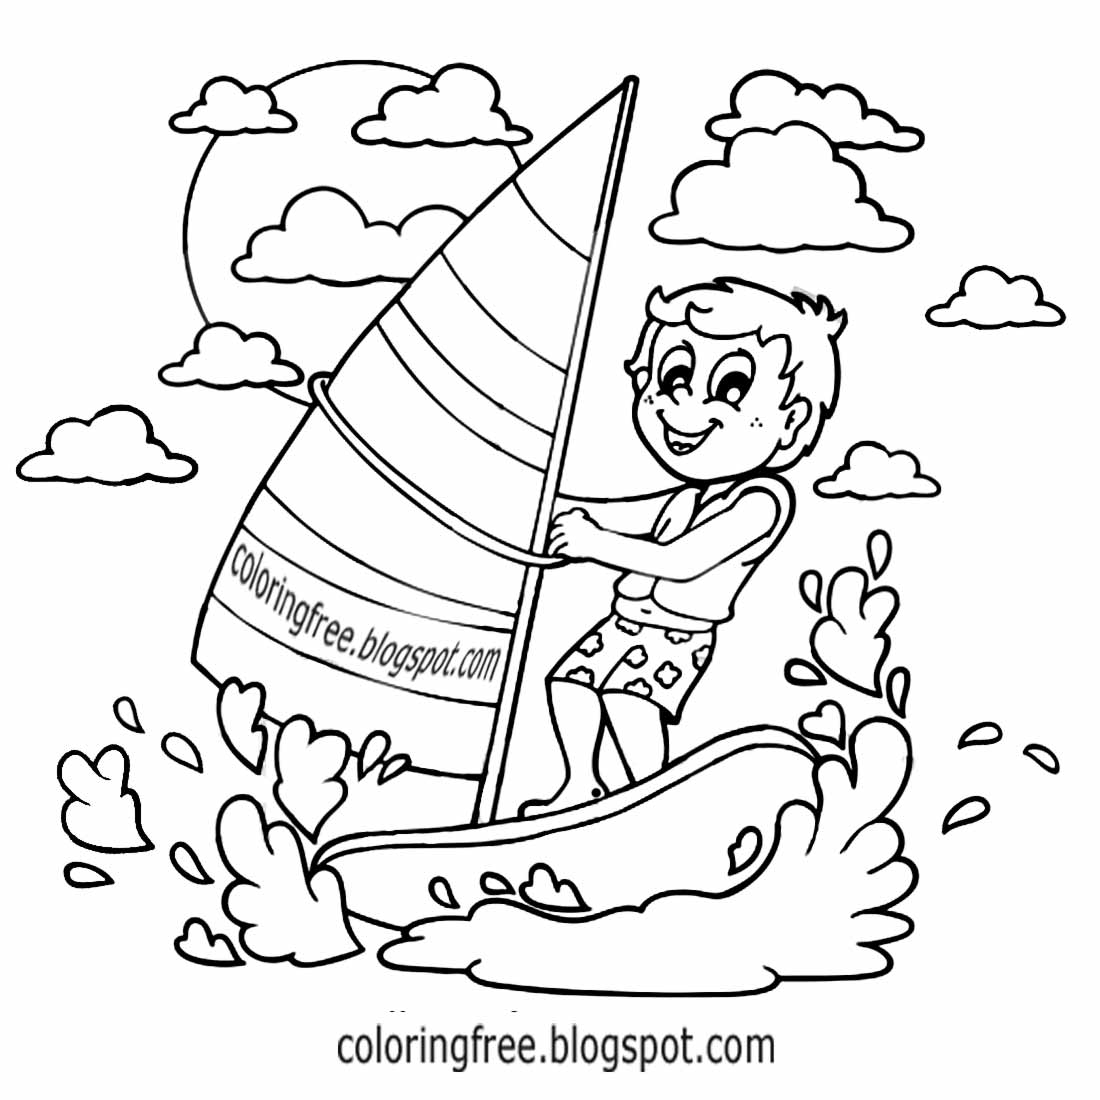 Free Coloring Pages Printable Pictures To Color Kids Drawing Ideas Printable Australian